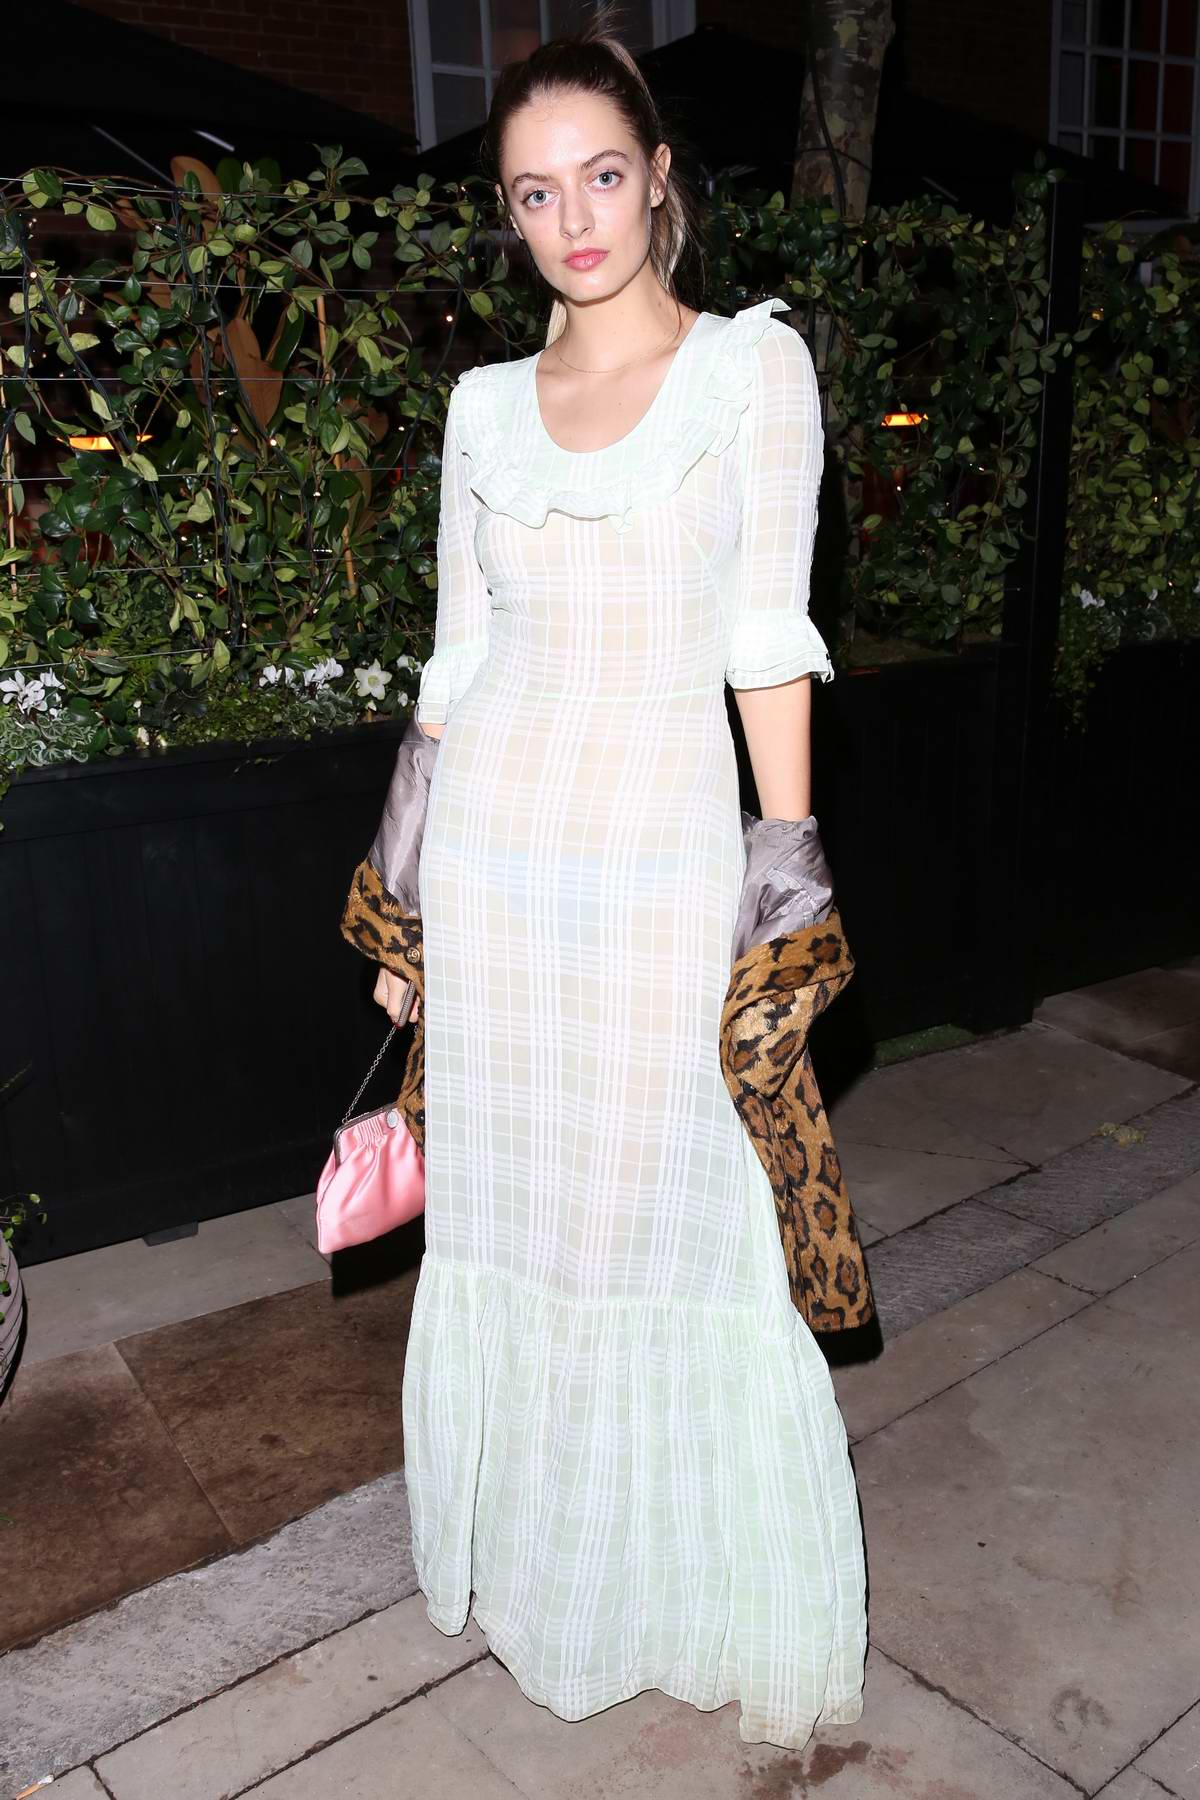 Idina Moncreiffe attends the launch party of the Coral Room, A Bar with Personality at Bloomsbury Hotel in London